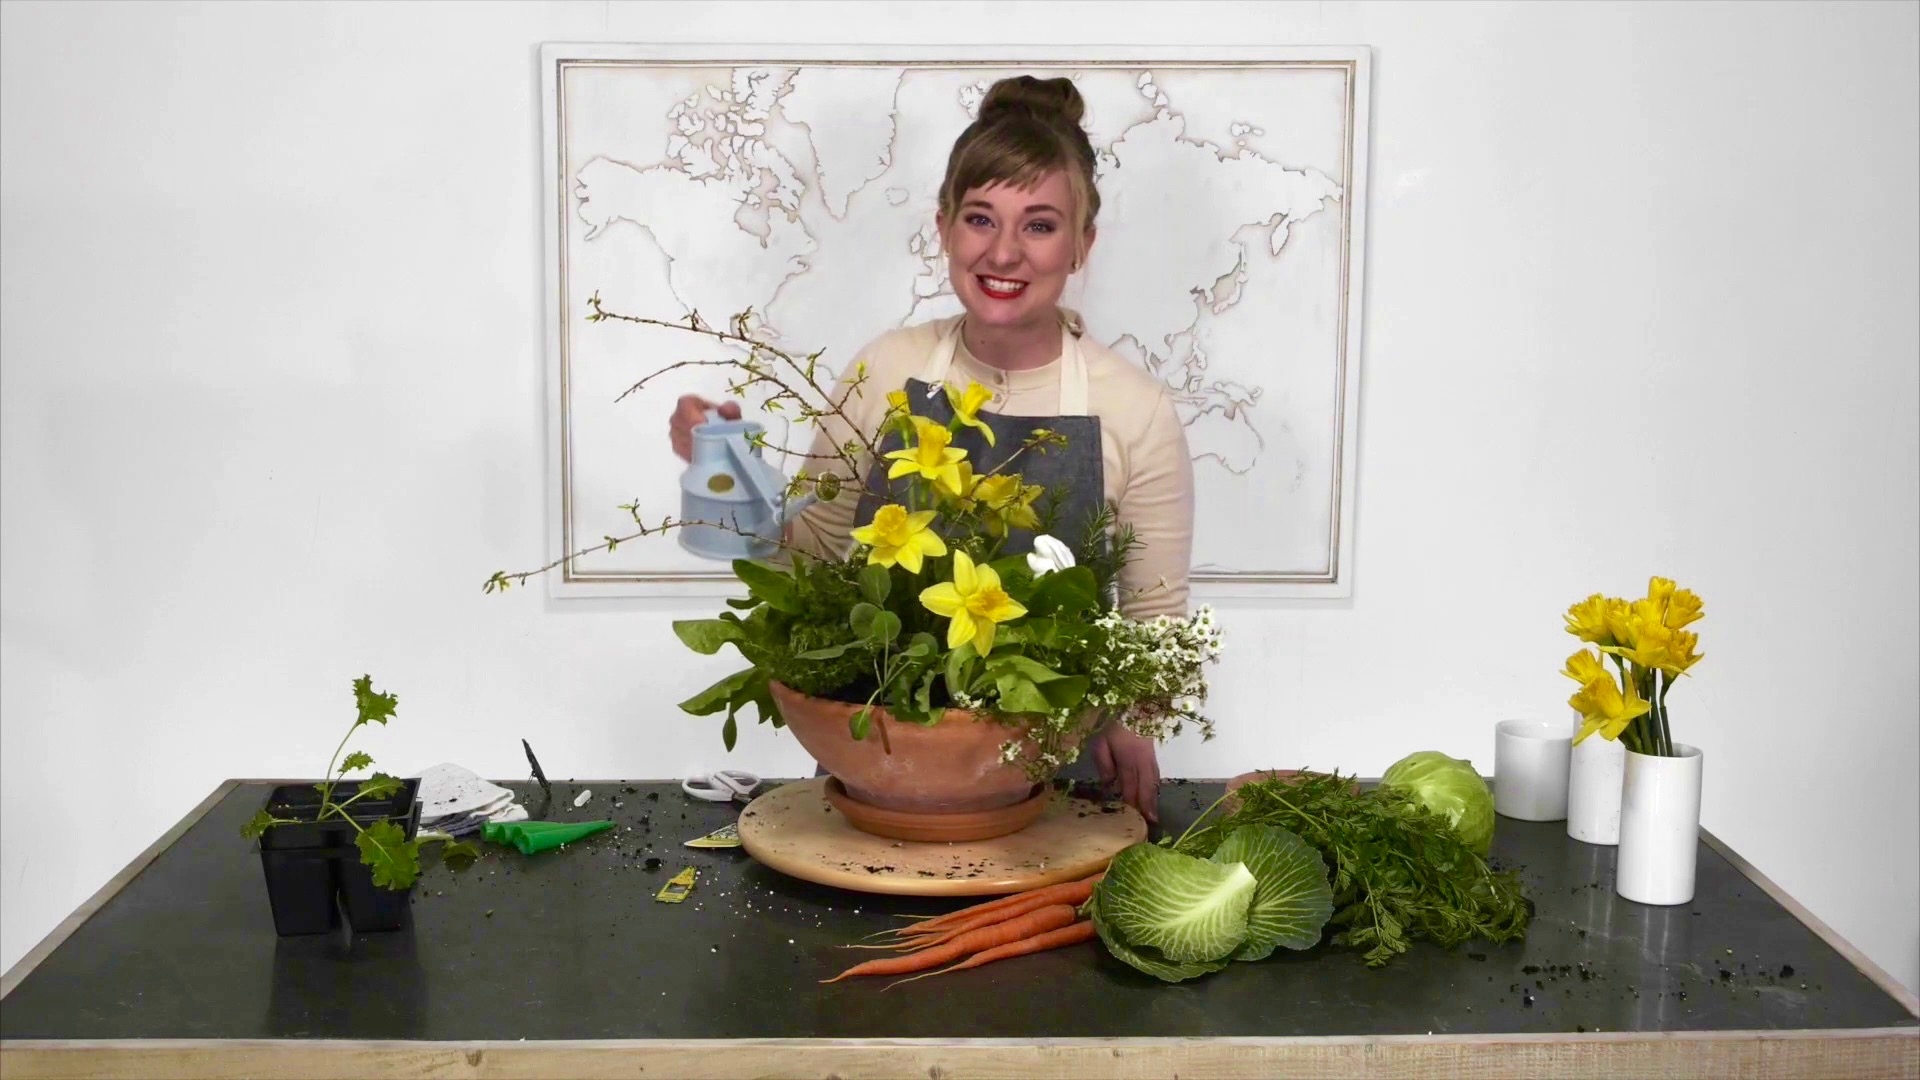 Video: Mixing potted plants and flowers from Team Flower